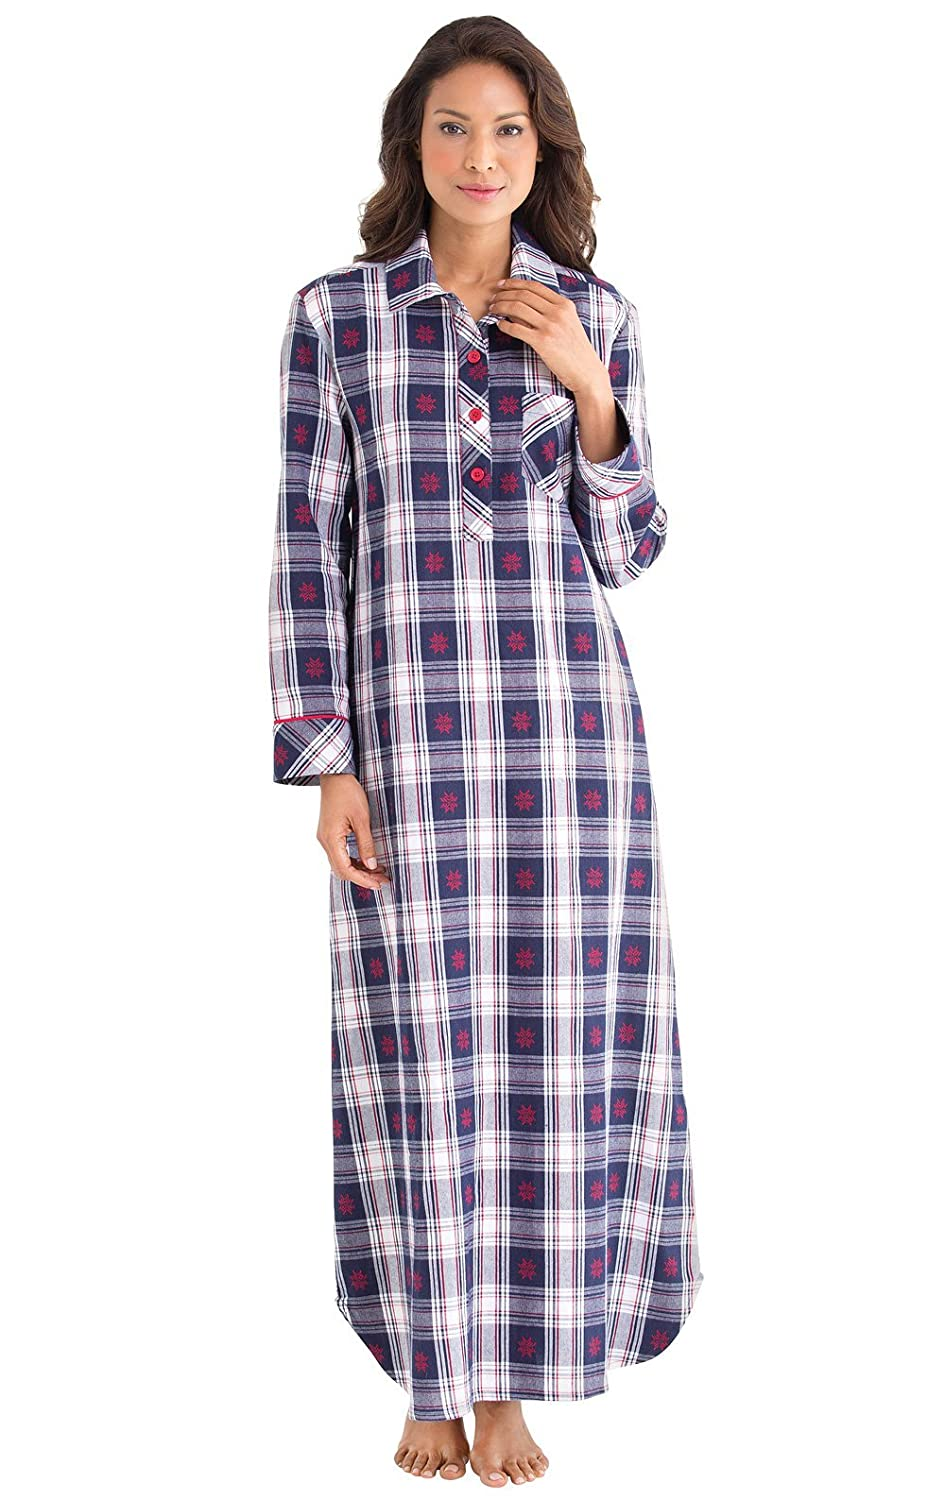 99ab0a96aa PajamaGram Ladies Nightgown - Cotton Nightgowns for Women